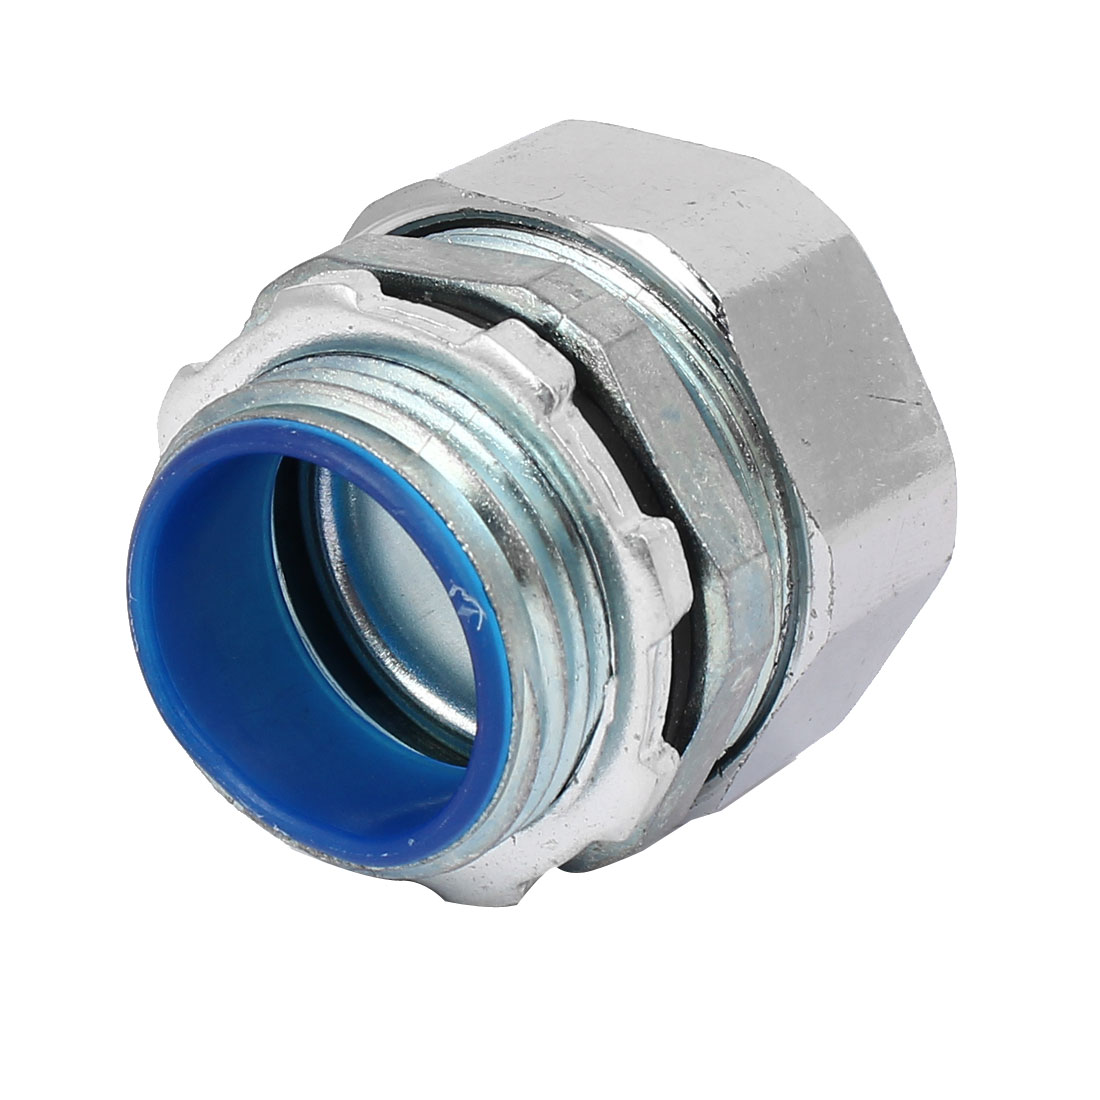 33mm 1BSP Male Thread Straight Pipe Fitting Coupler Tube Connector Silver Tone